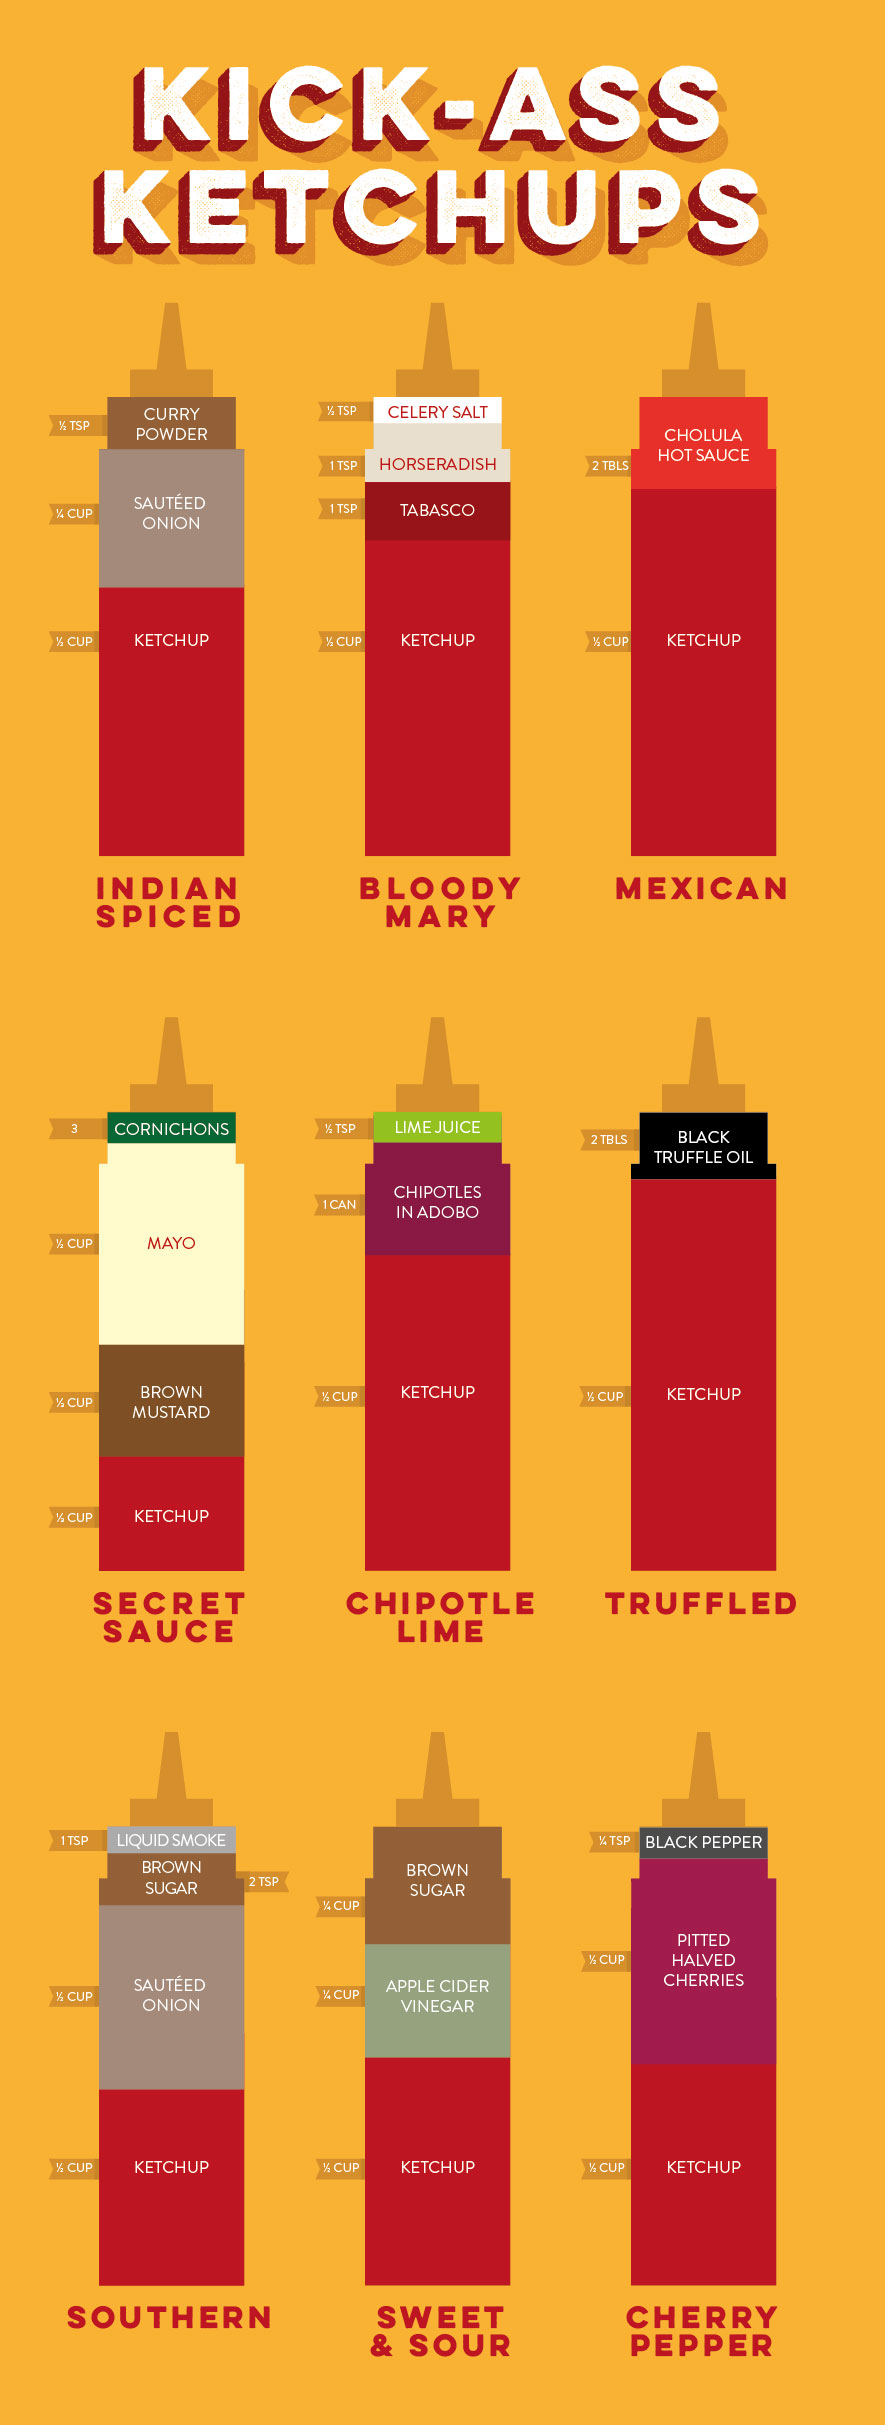 Kickass Ketchups Custom Ketchup Recipes Infographic